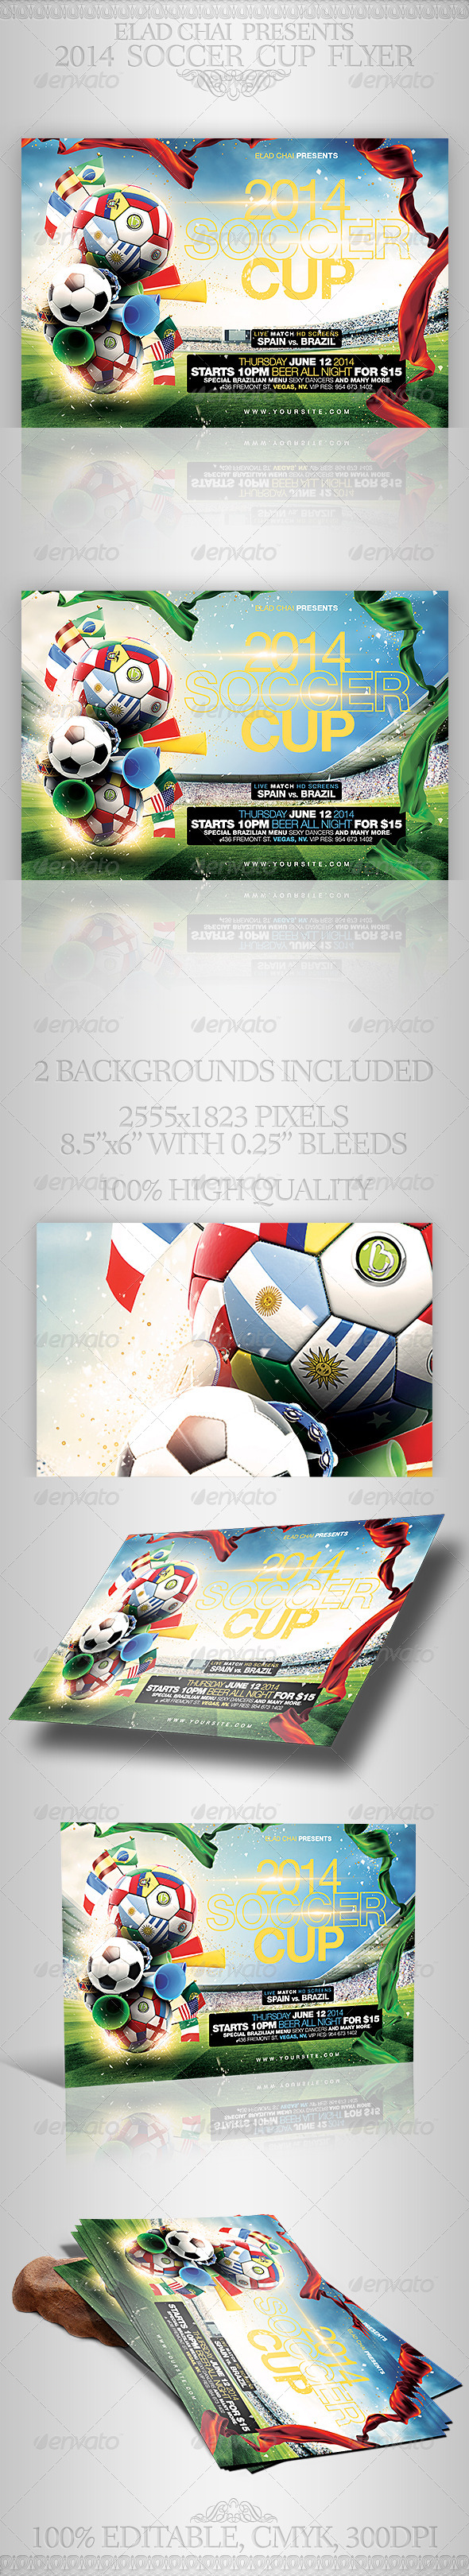 GraphicRiver 2014 Brazil Soccer Football World Cup Flyer 7092228